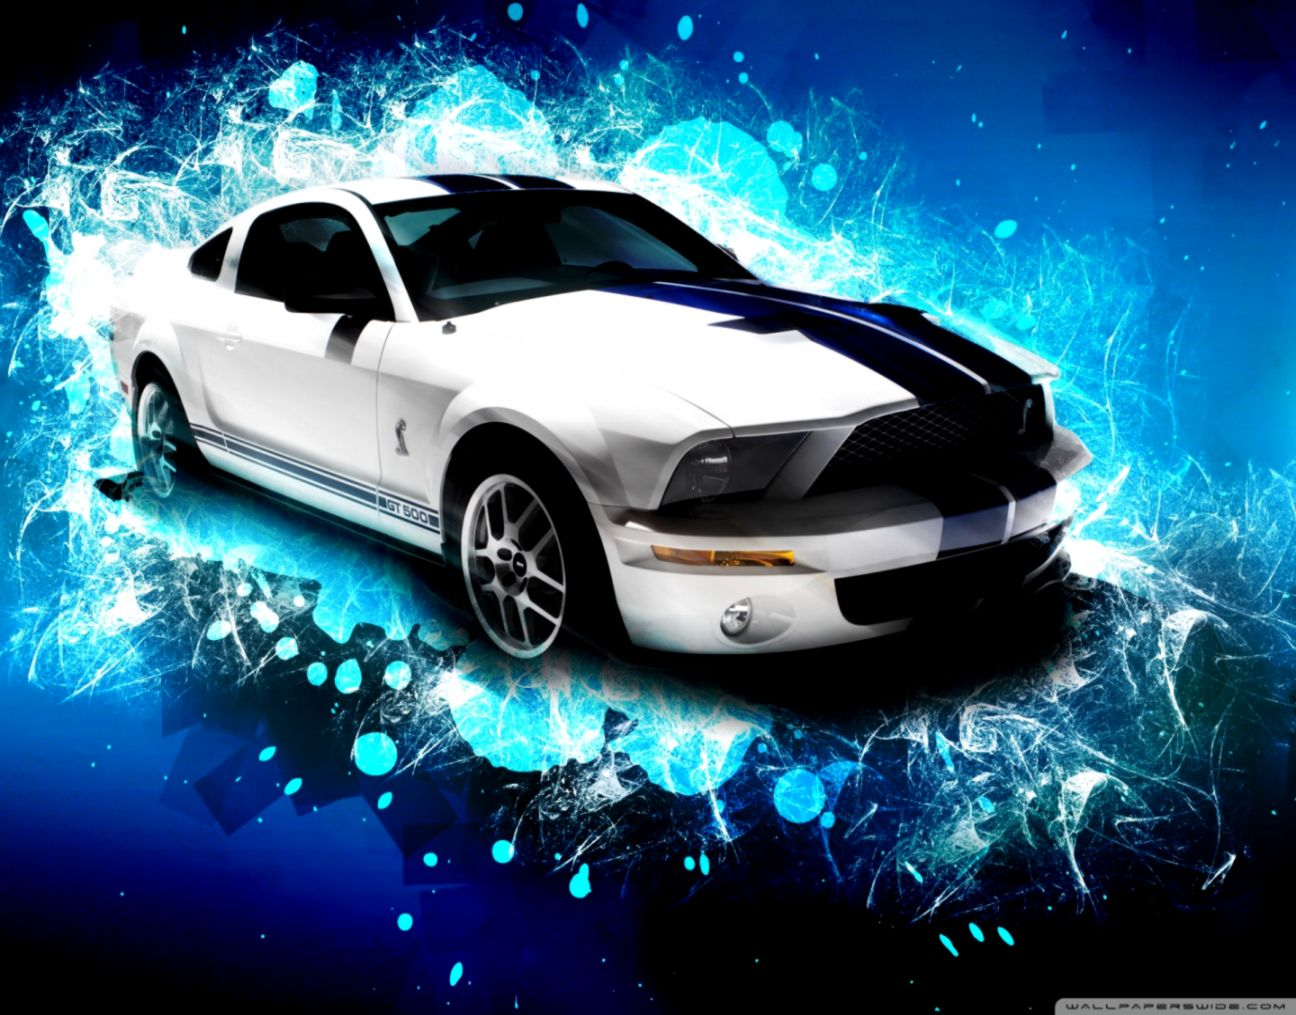 Ford mustang gto wallpaper wallpapers image gt - small